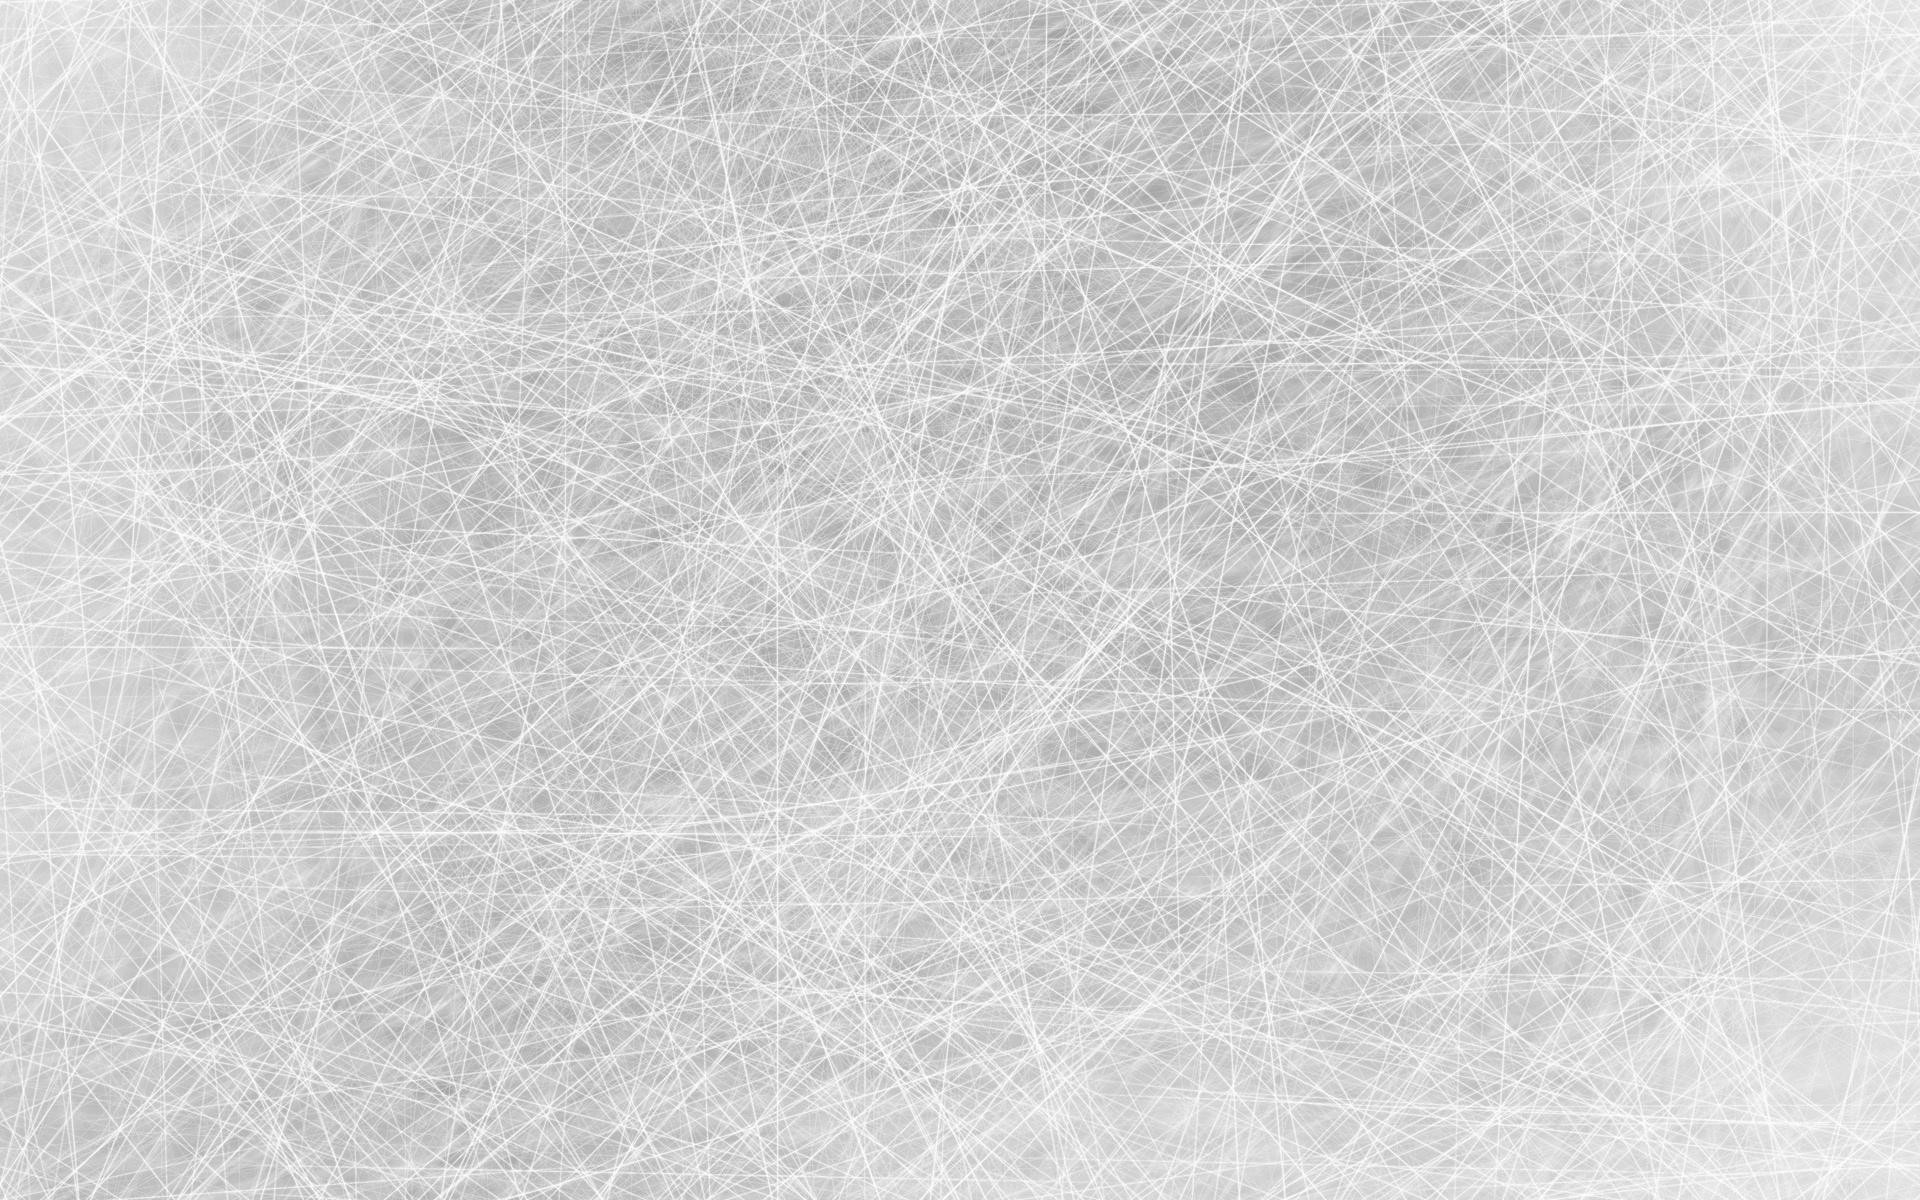 White Texture Background Wallpaper Hd #10577